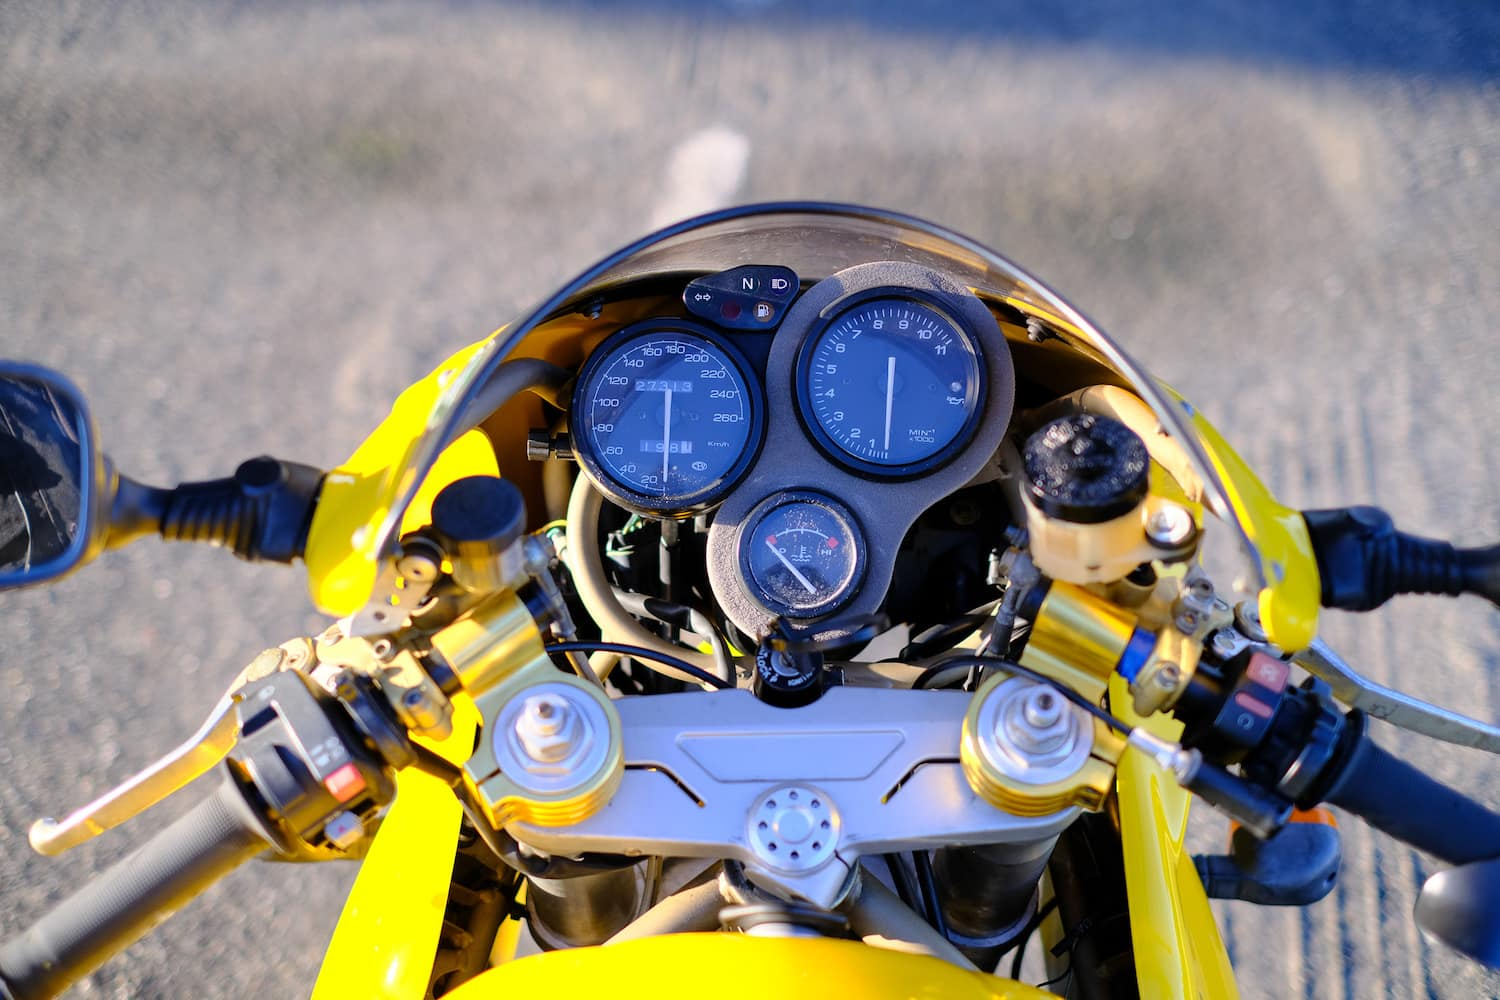 Cockpit of this Ducati Supersport 900 second gen, yellow